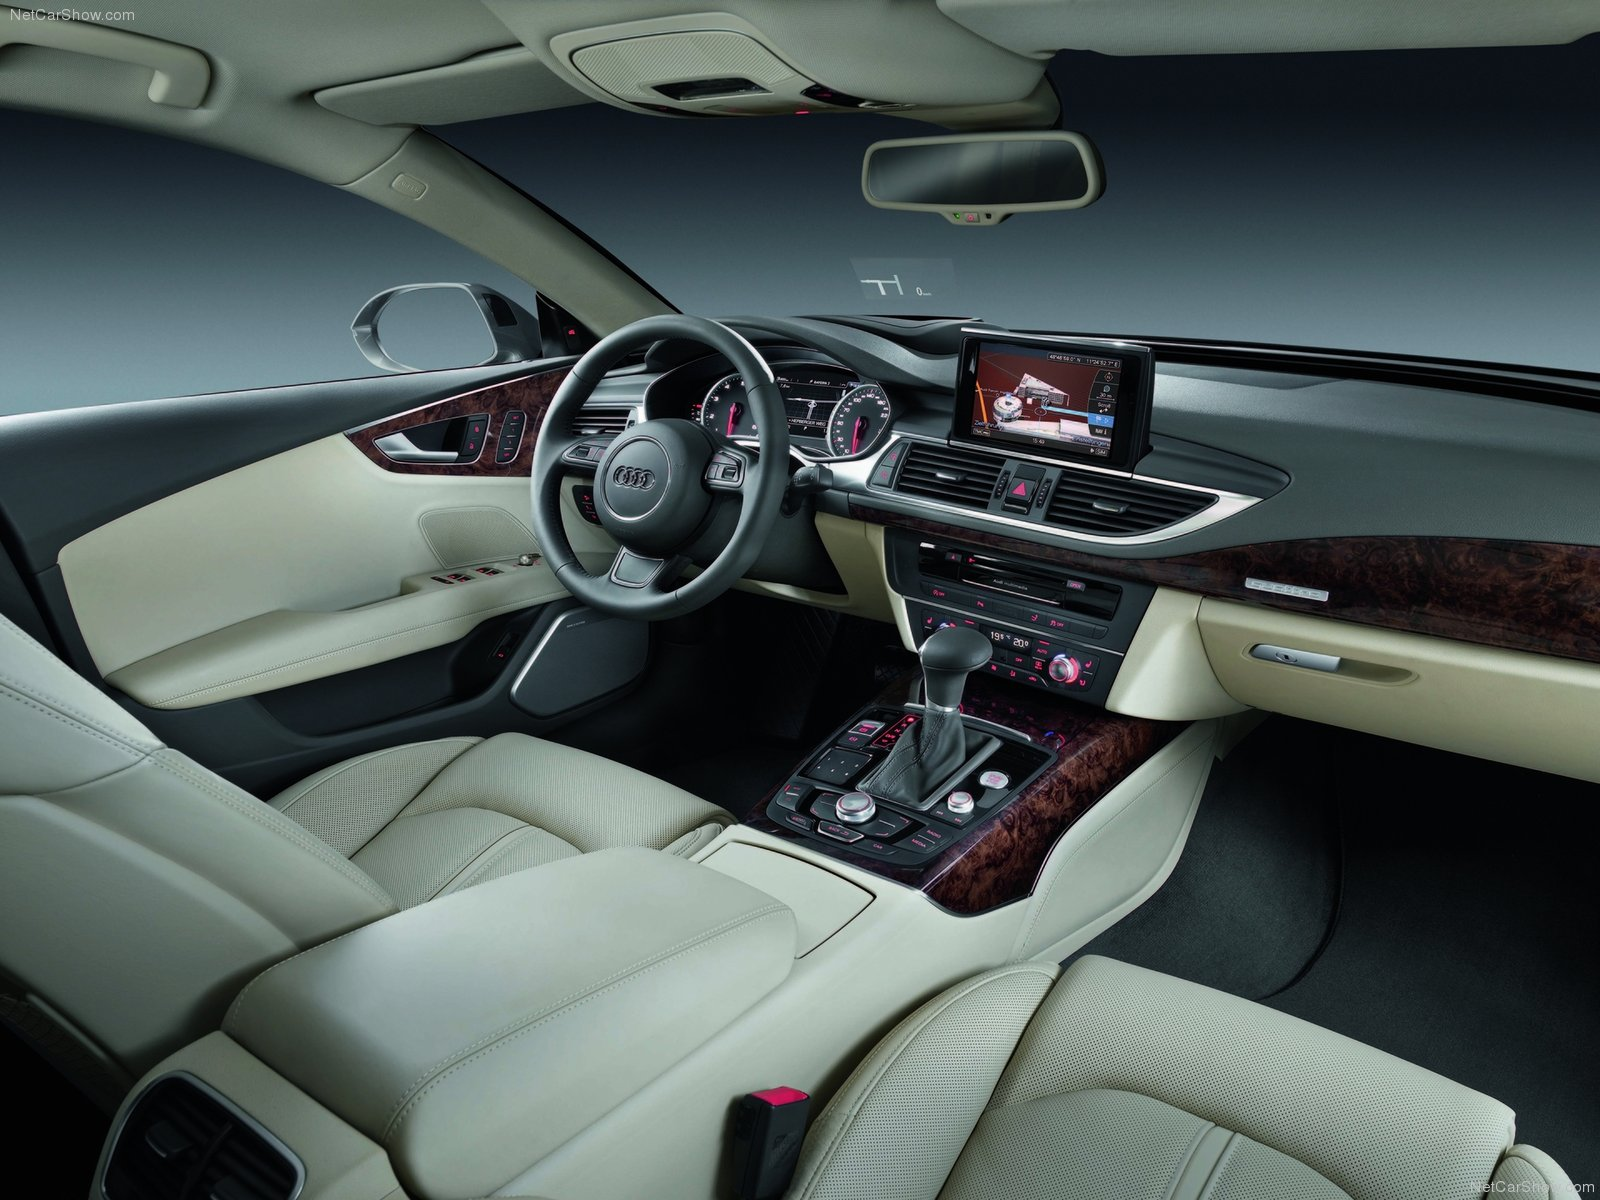 3dtuning of audi a7 liftback 2011 unique on for Auto onderdelen interieur